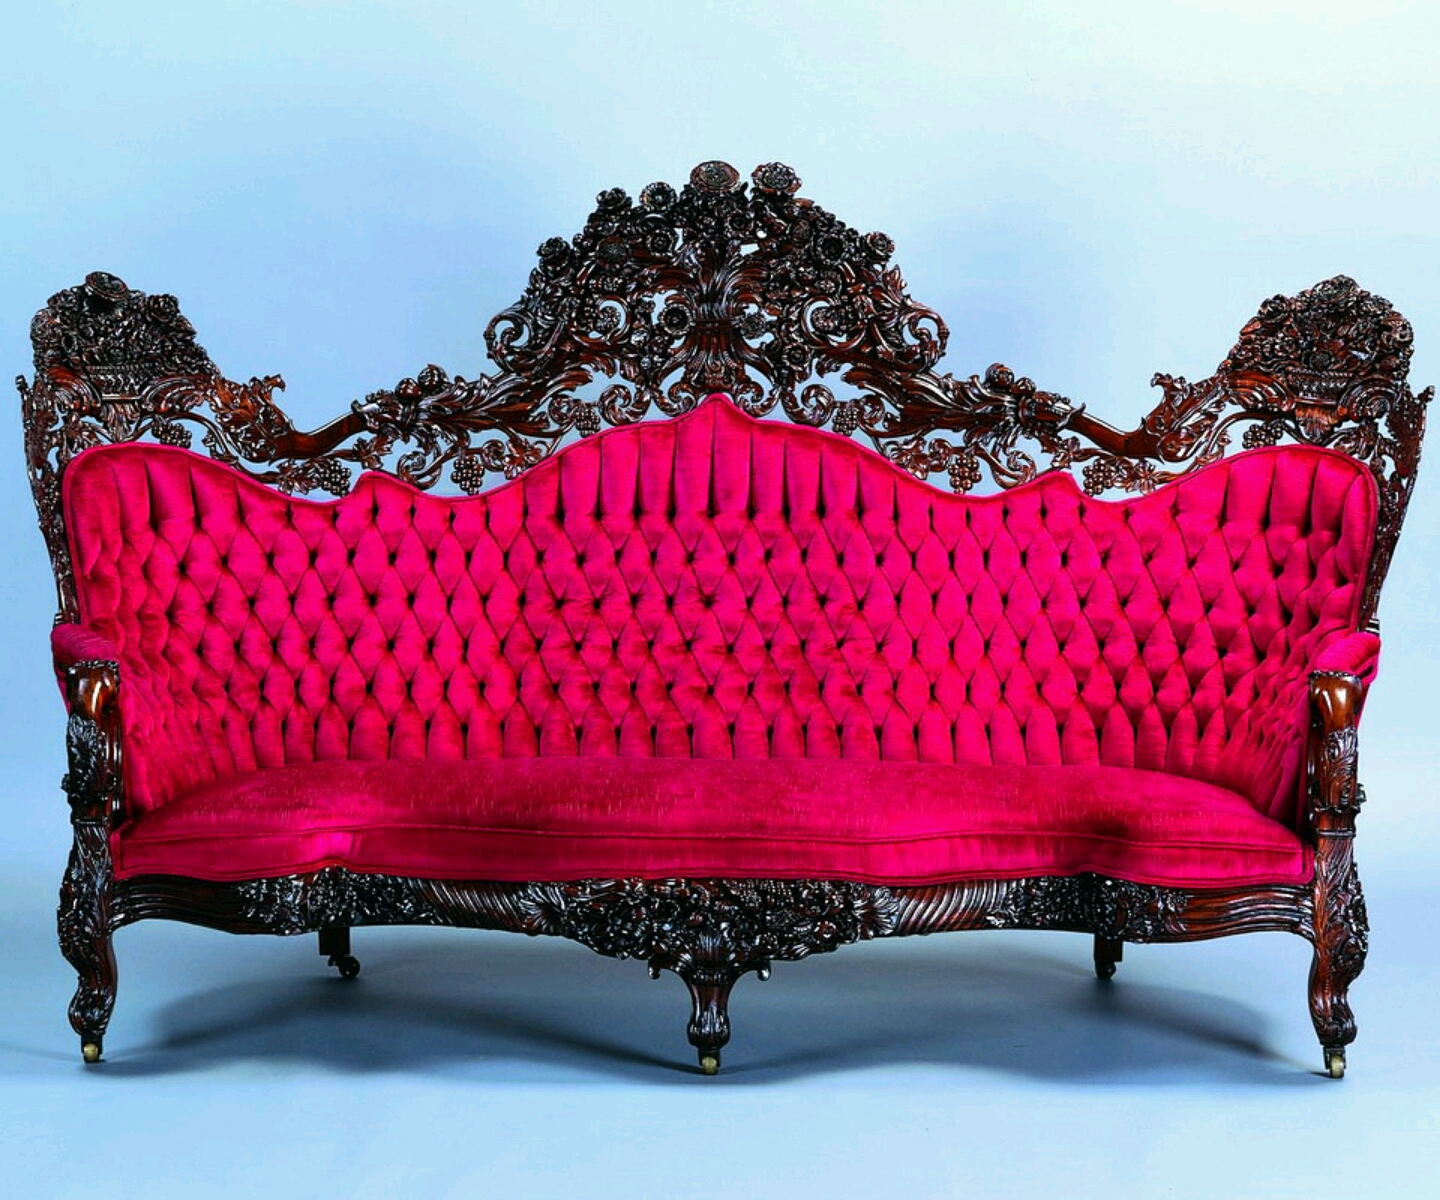 Beautiful Antique sofa designs.